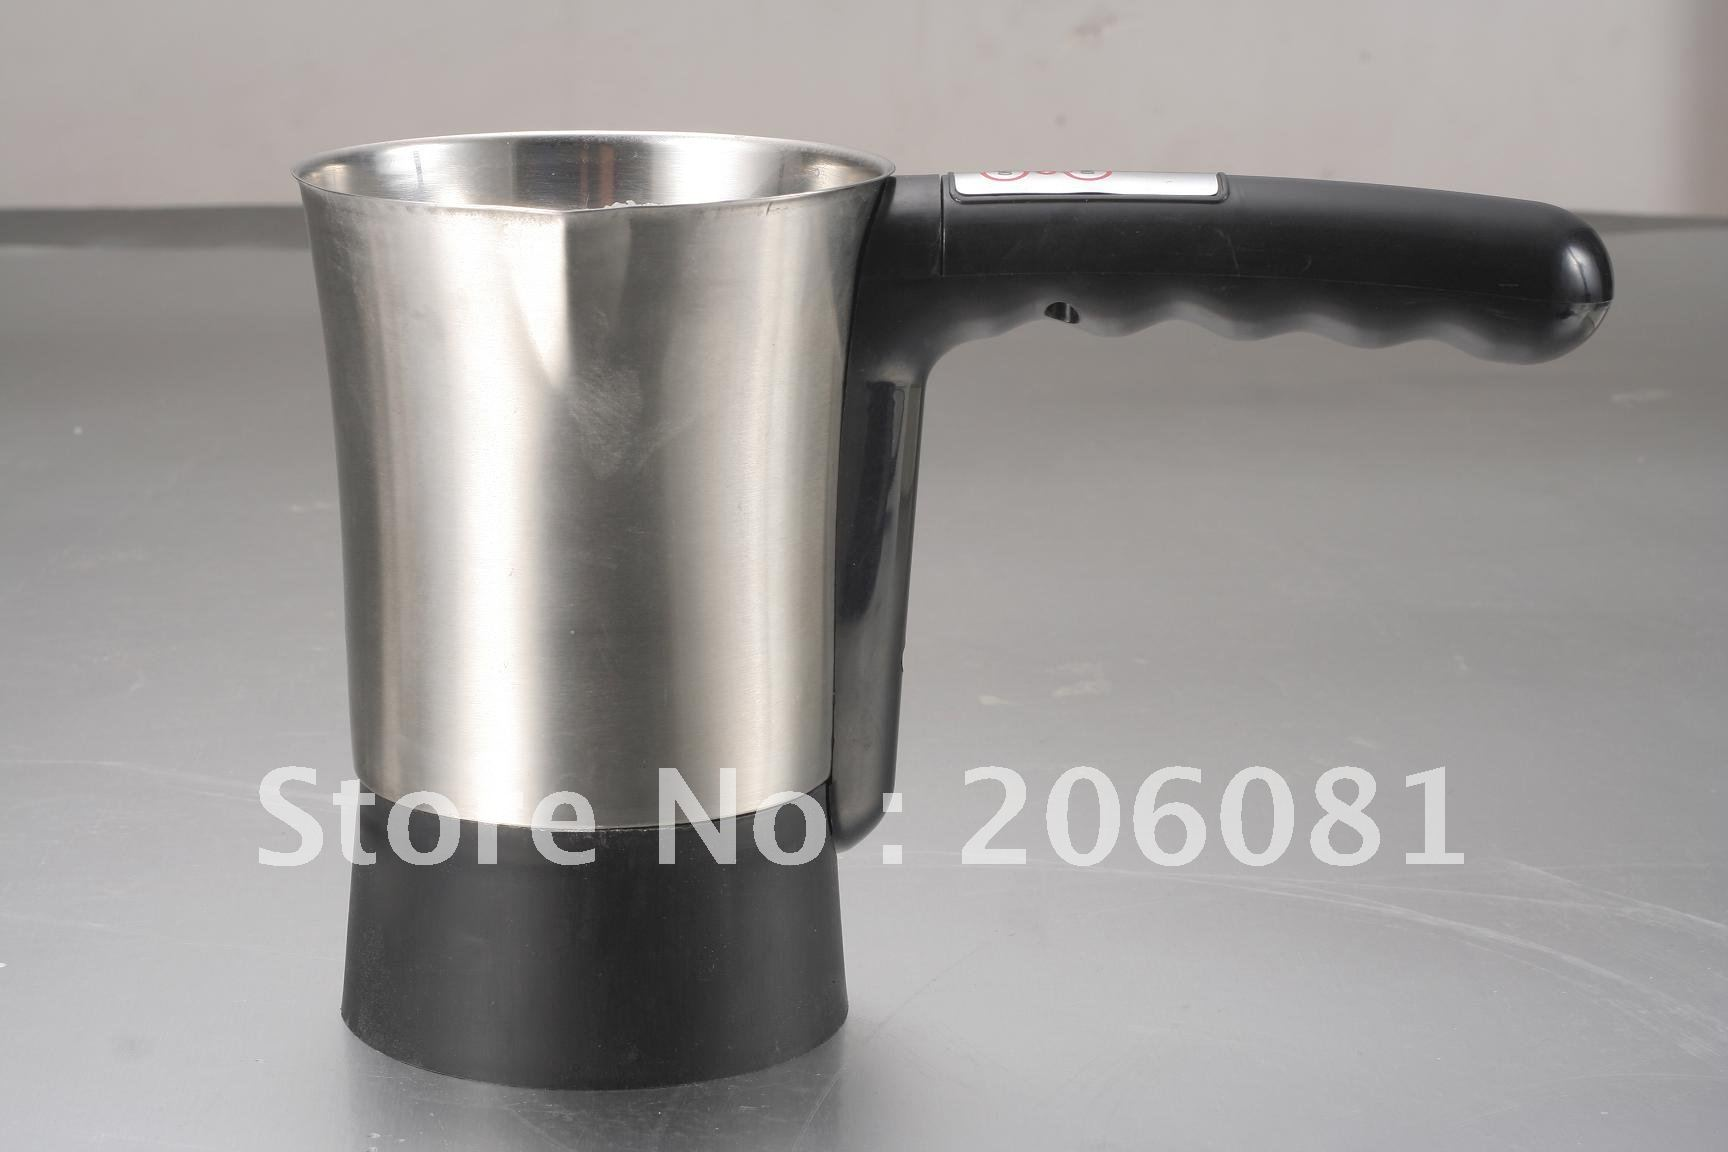 Electric Milk frother,capuccino coffee maker,autoamtic milk frother make,Milk foaming machine with lid<br>